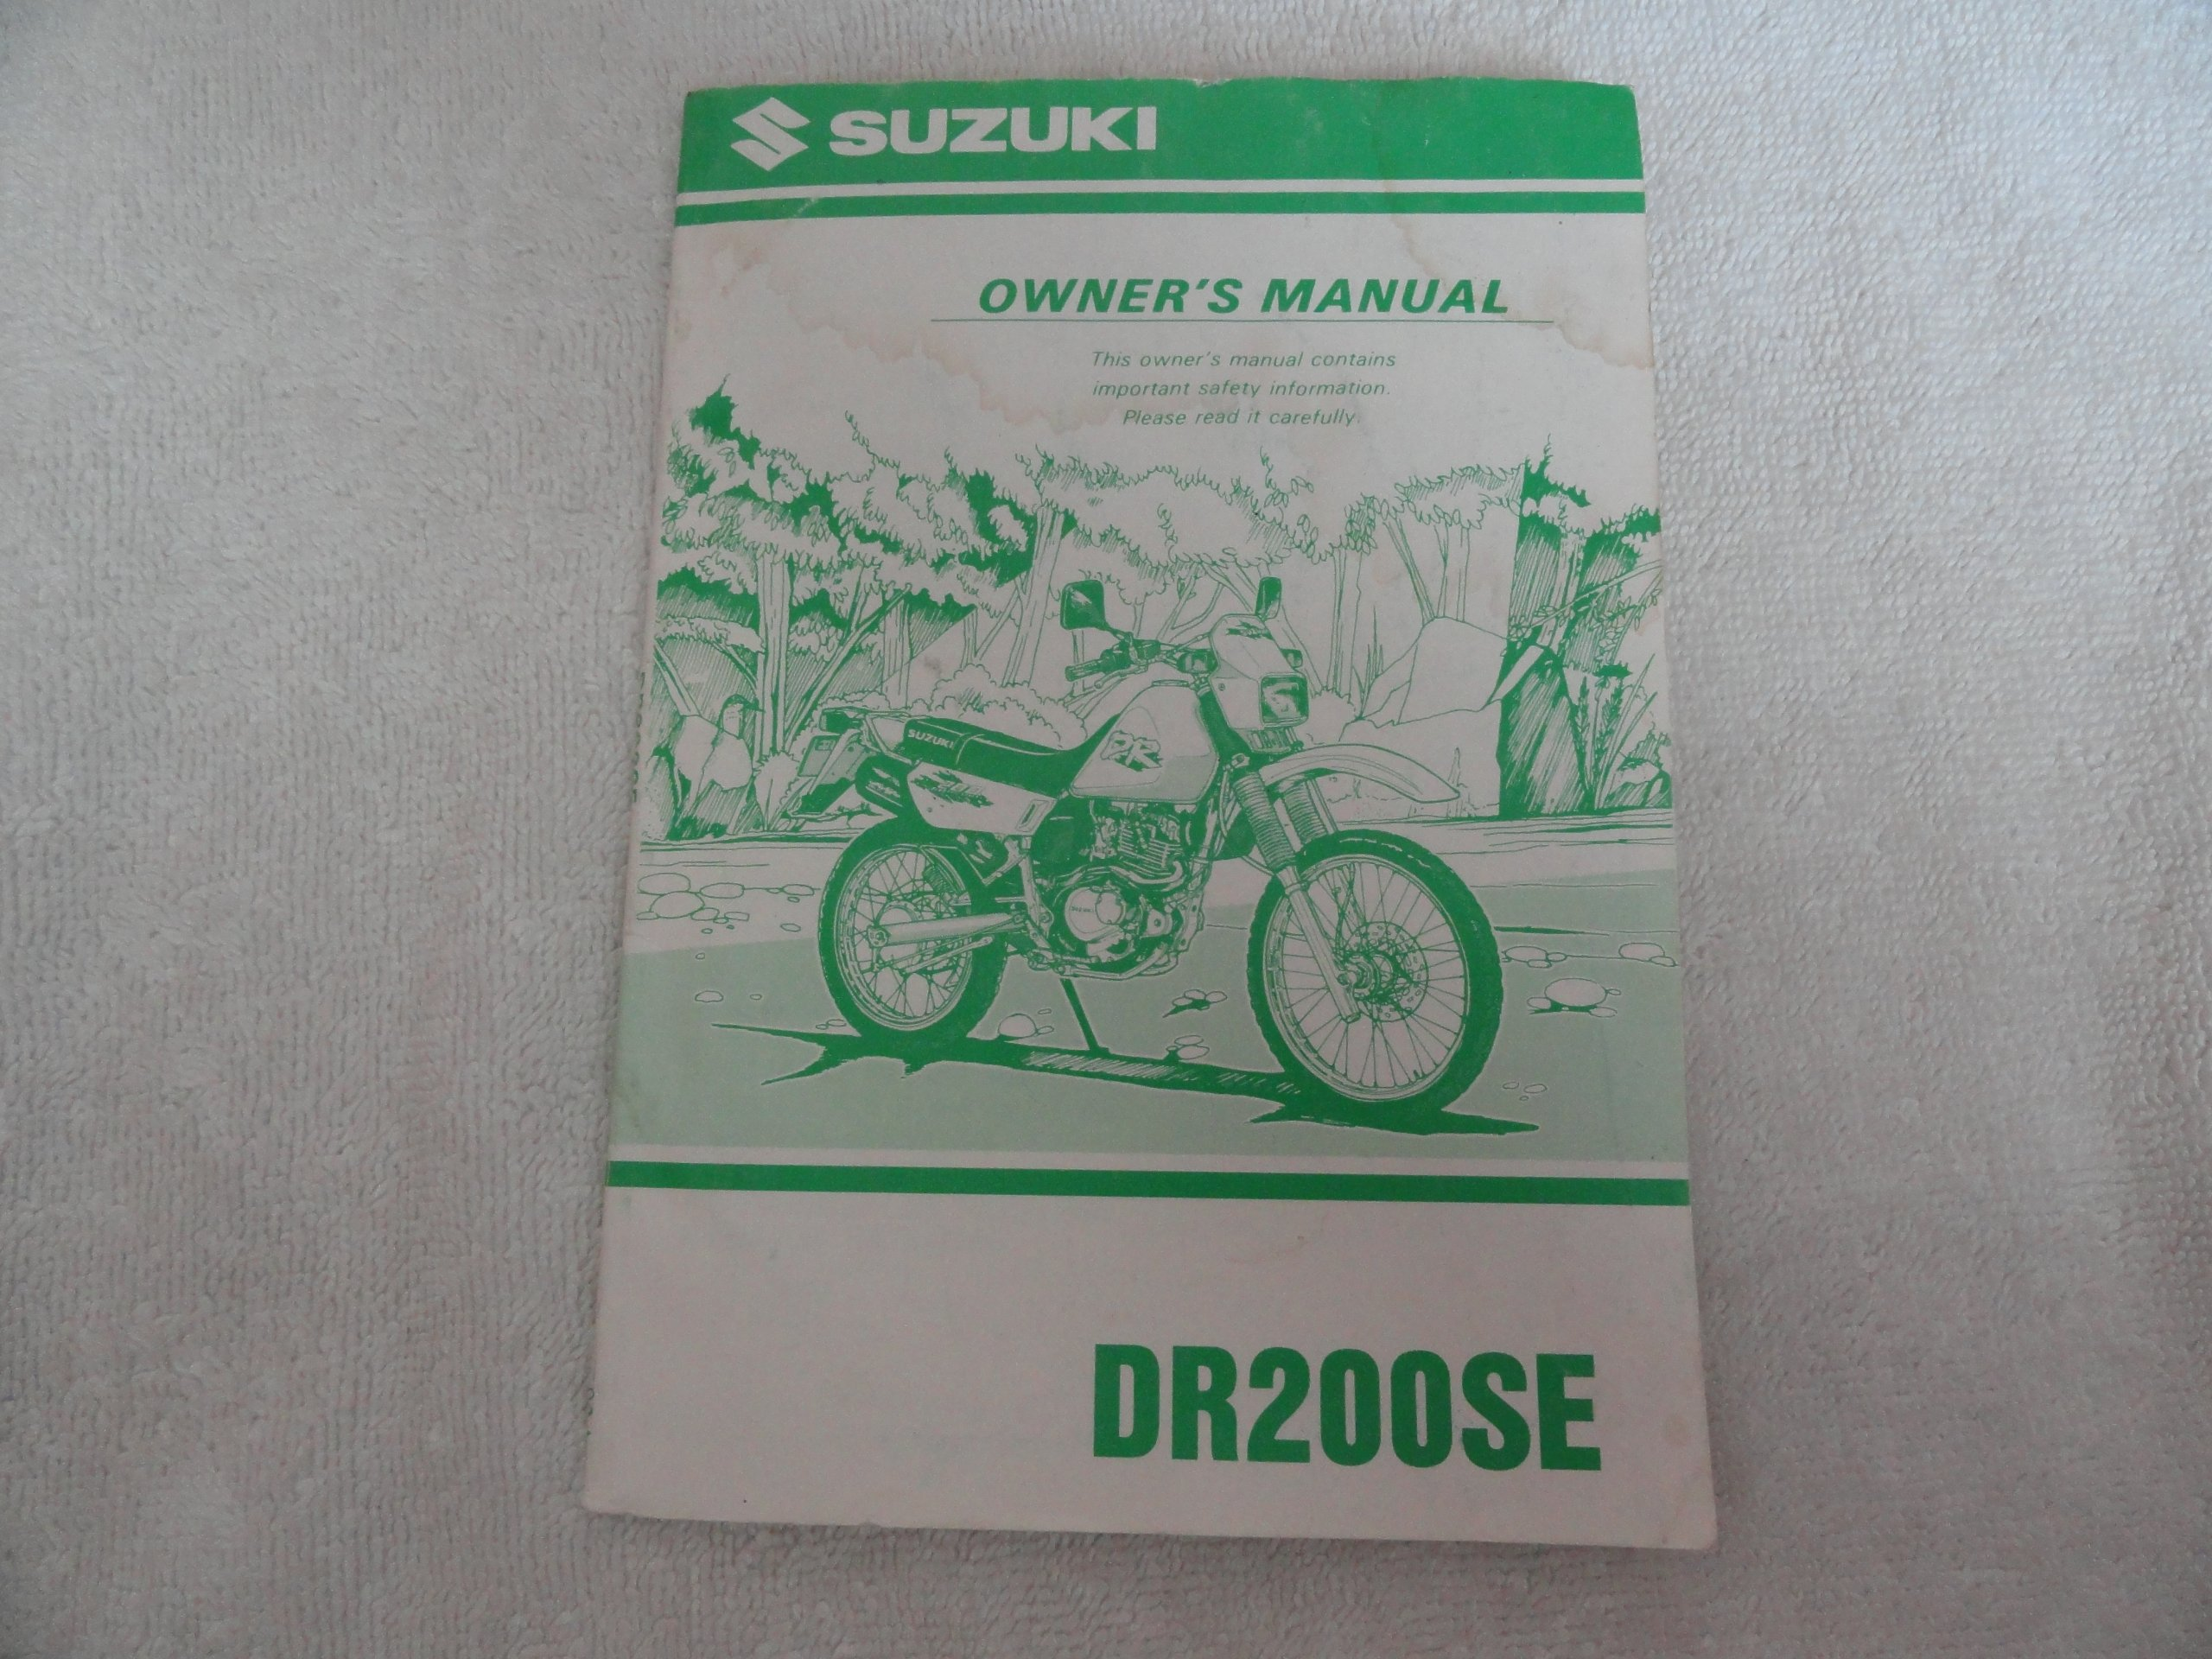 1998 1999 Suzuki DR200 Owners Manual DR 200 SE: Suzuki: Amazon.com: Books